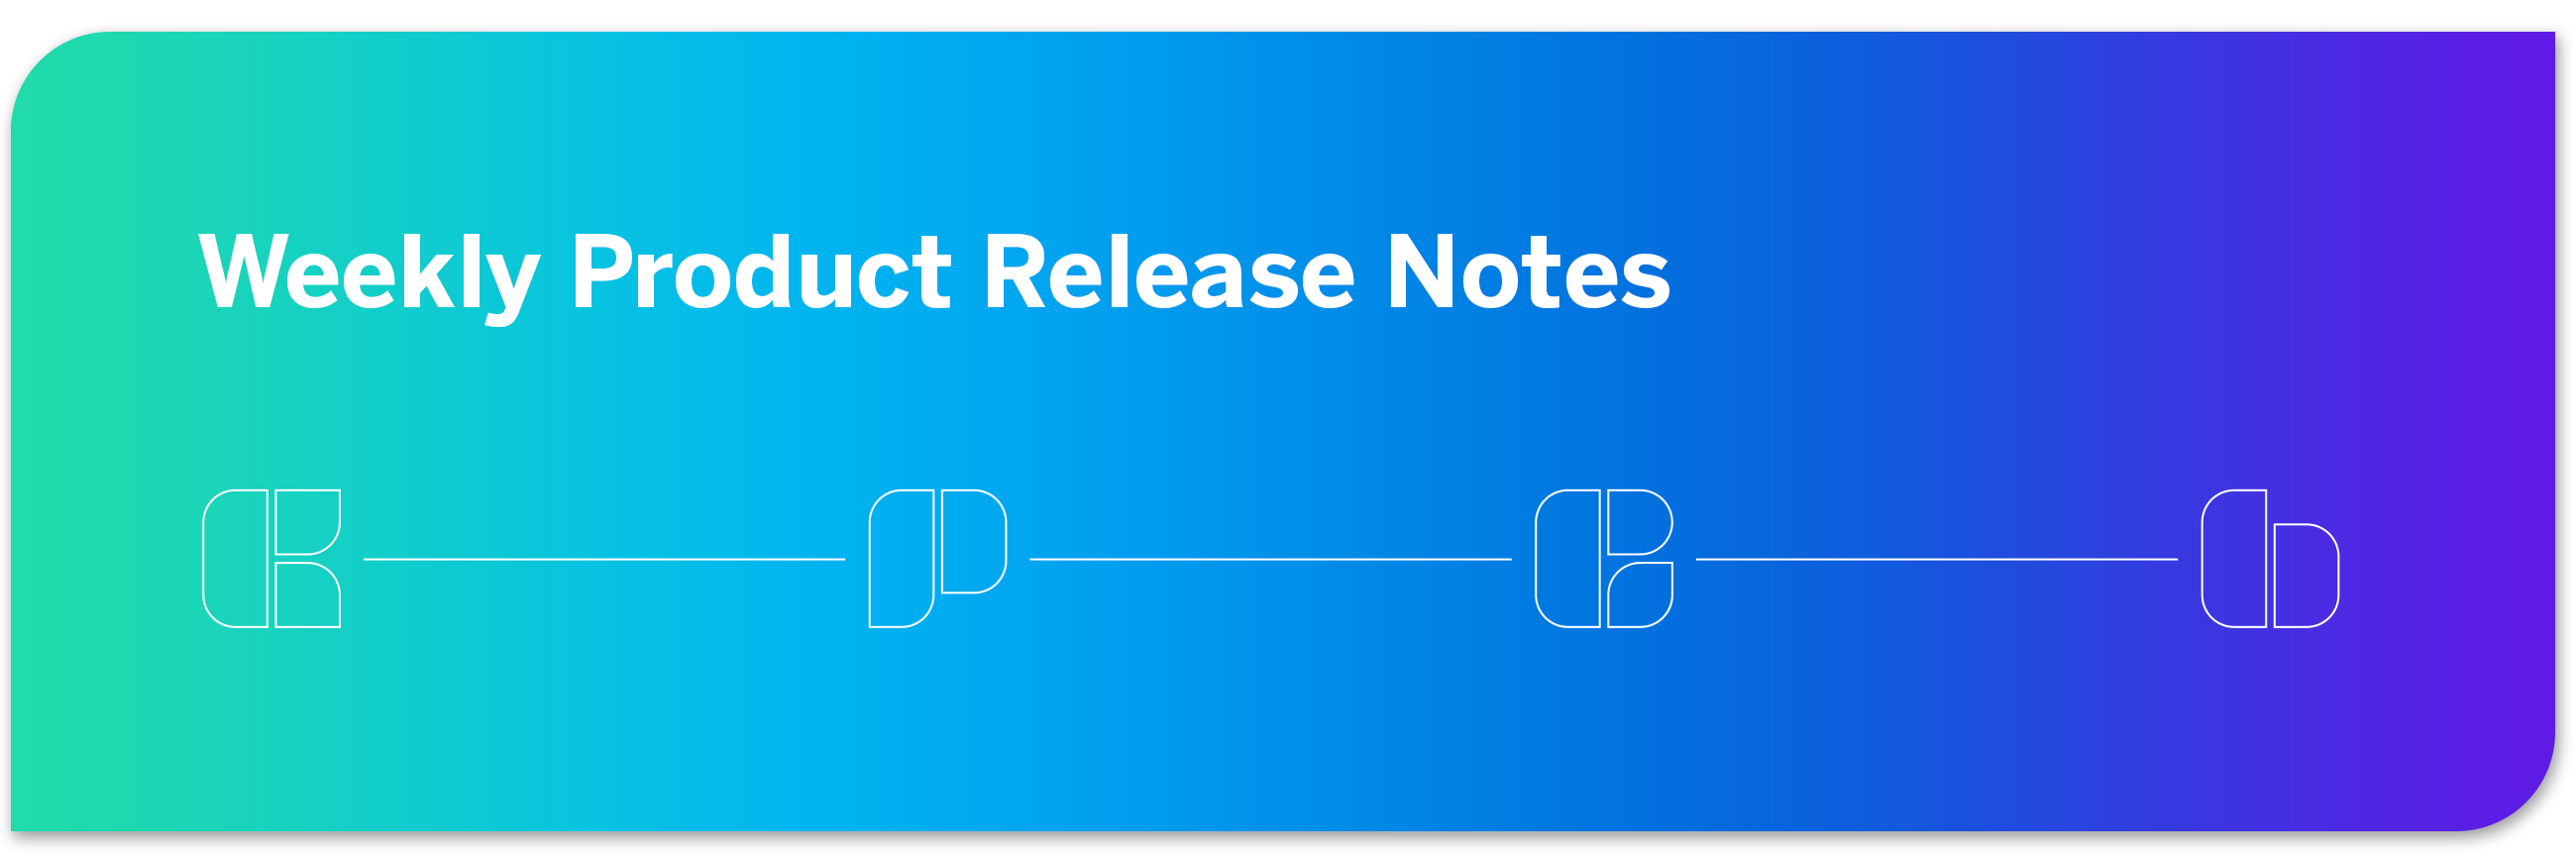 Weekly Product Release Notes.png